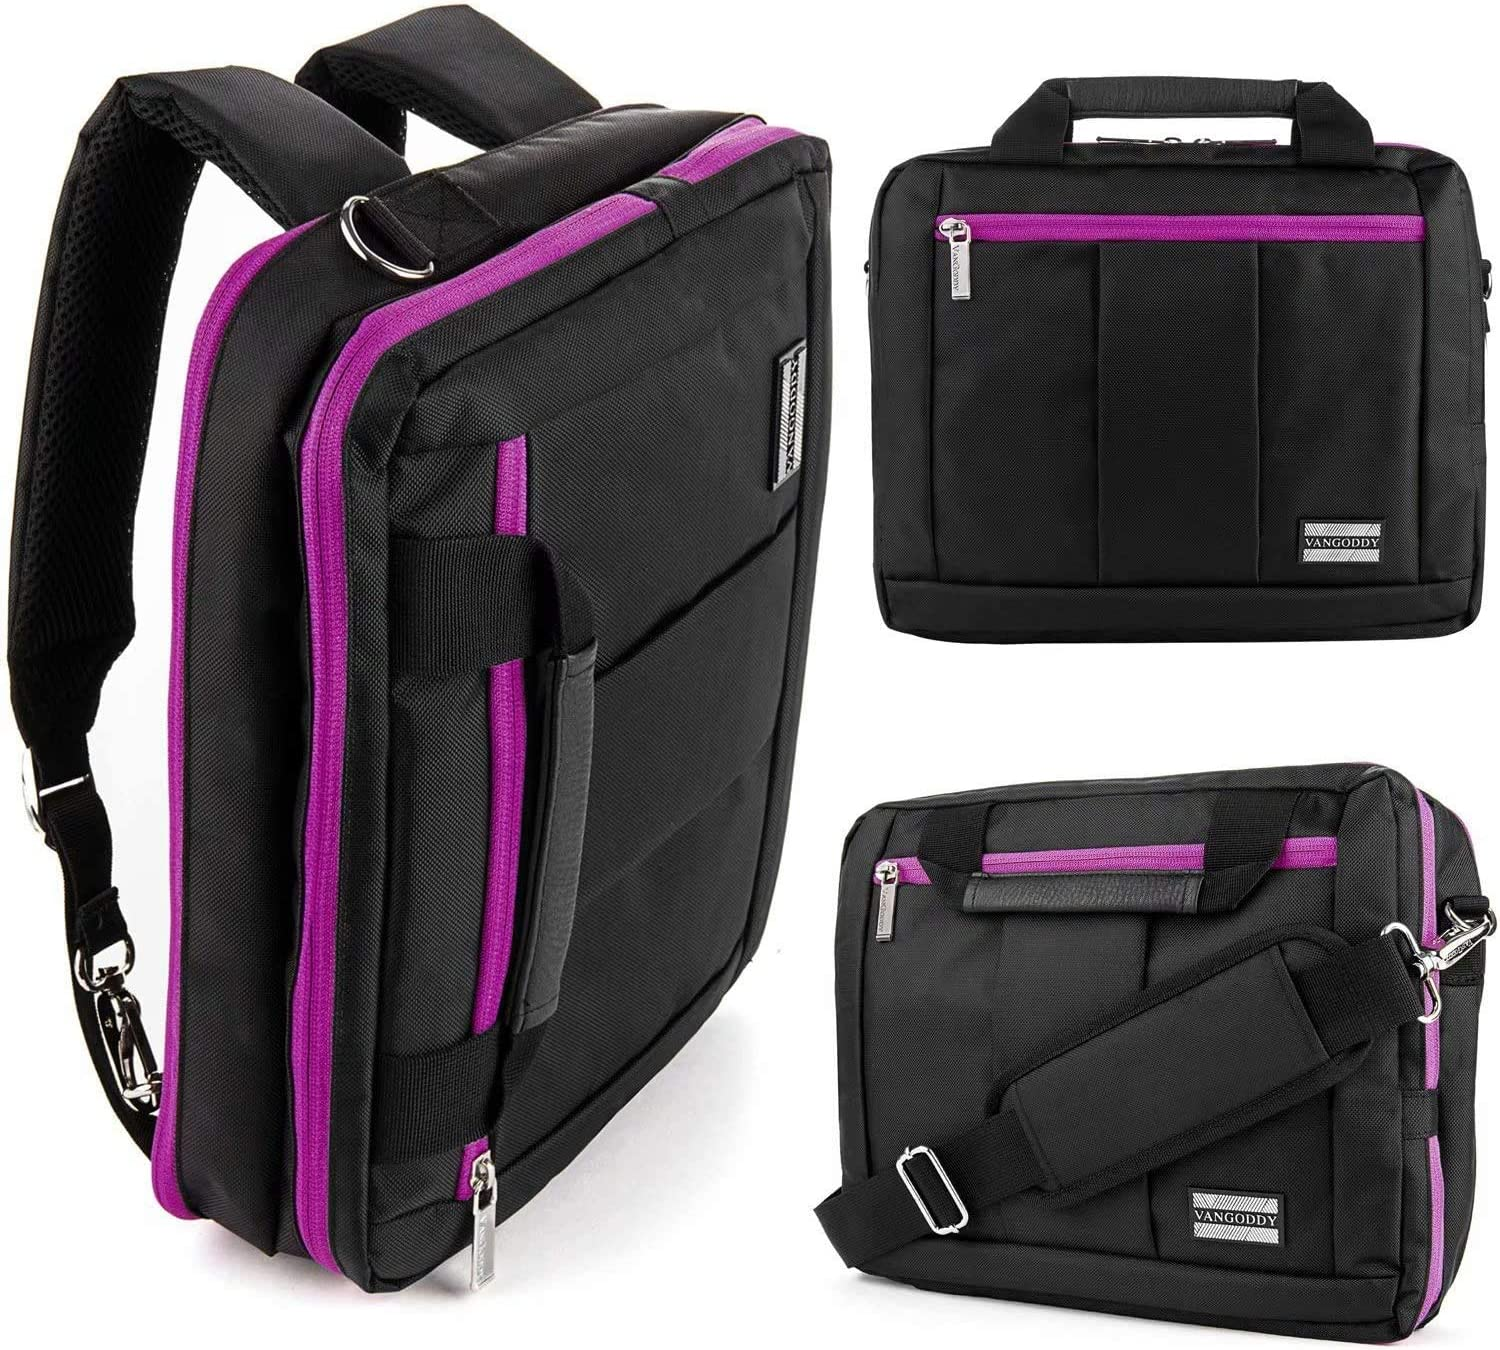 12 Inch Laptop Case for Dell Inspiron 13 7000 HP Stream HP Chromebook 11.6